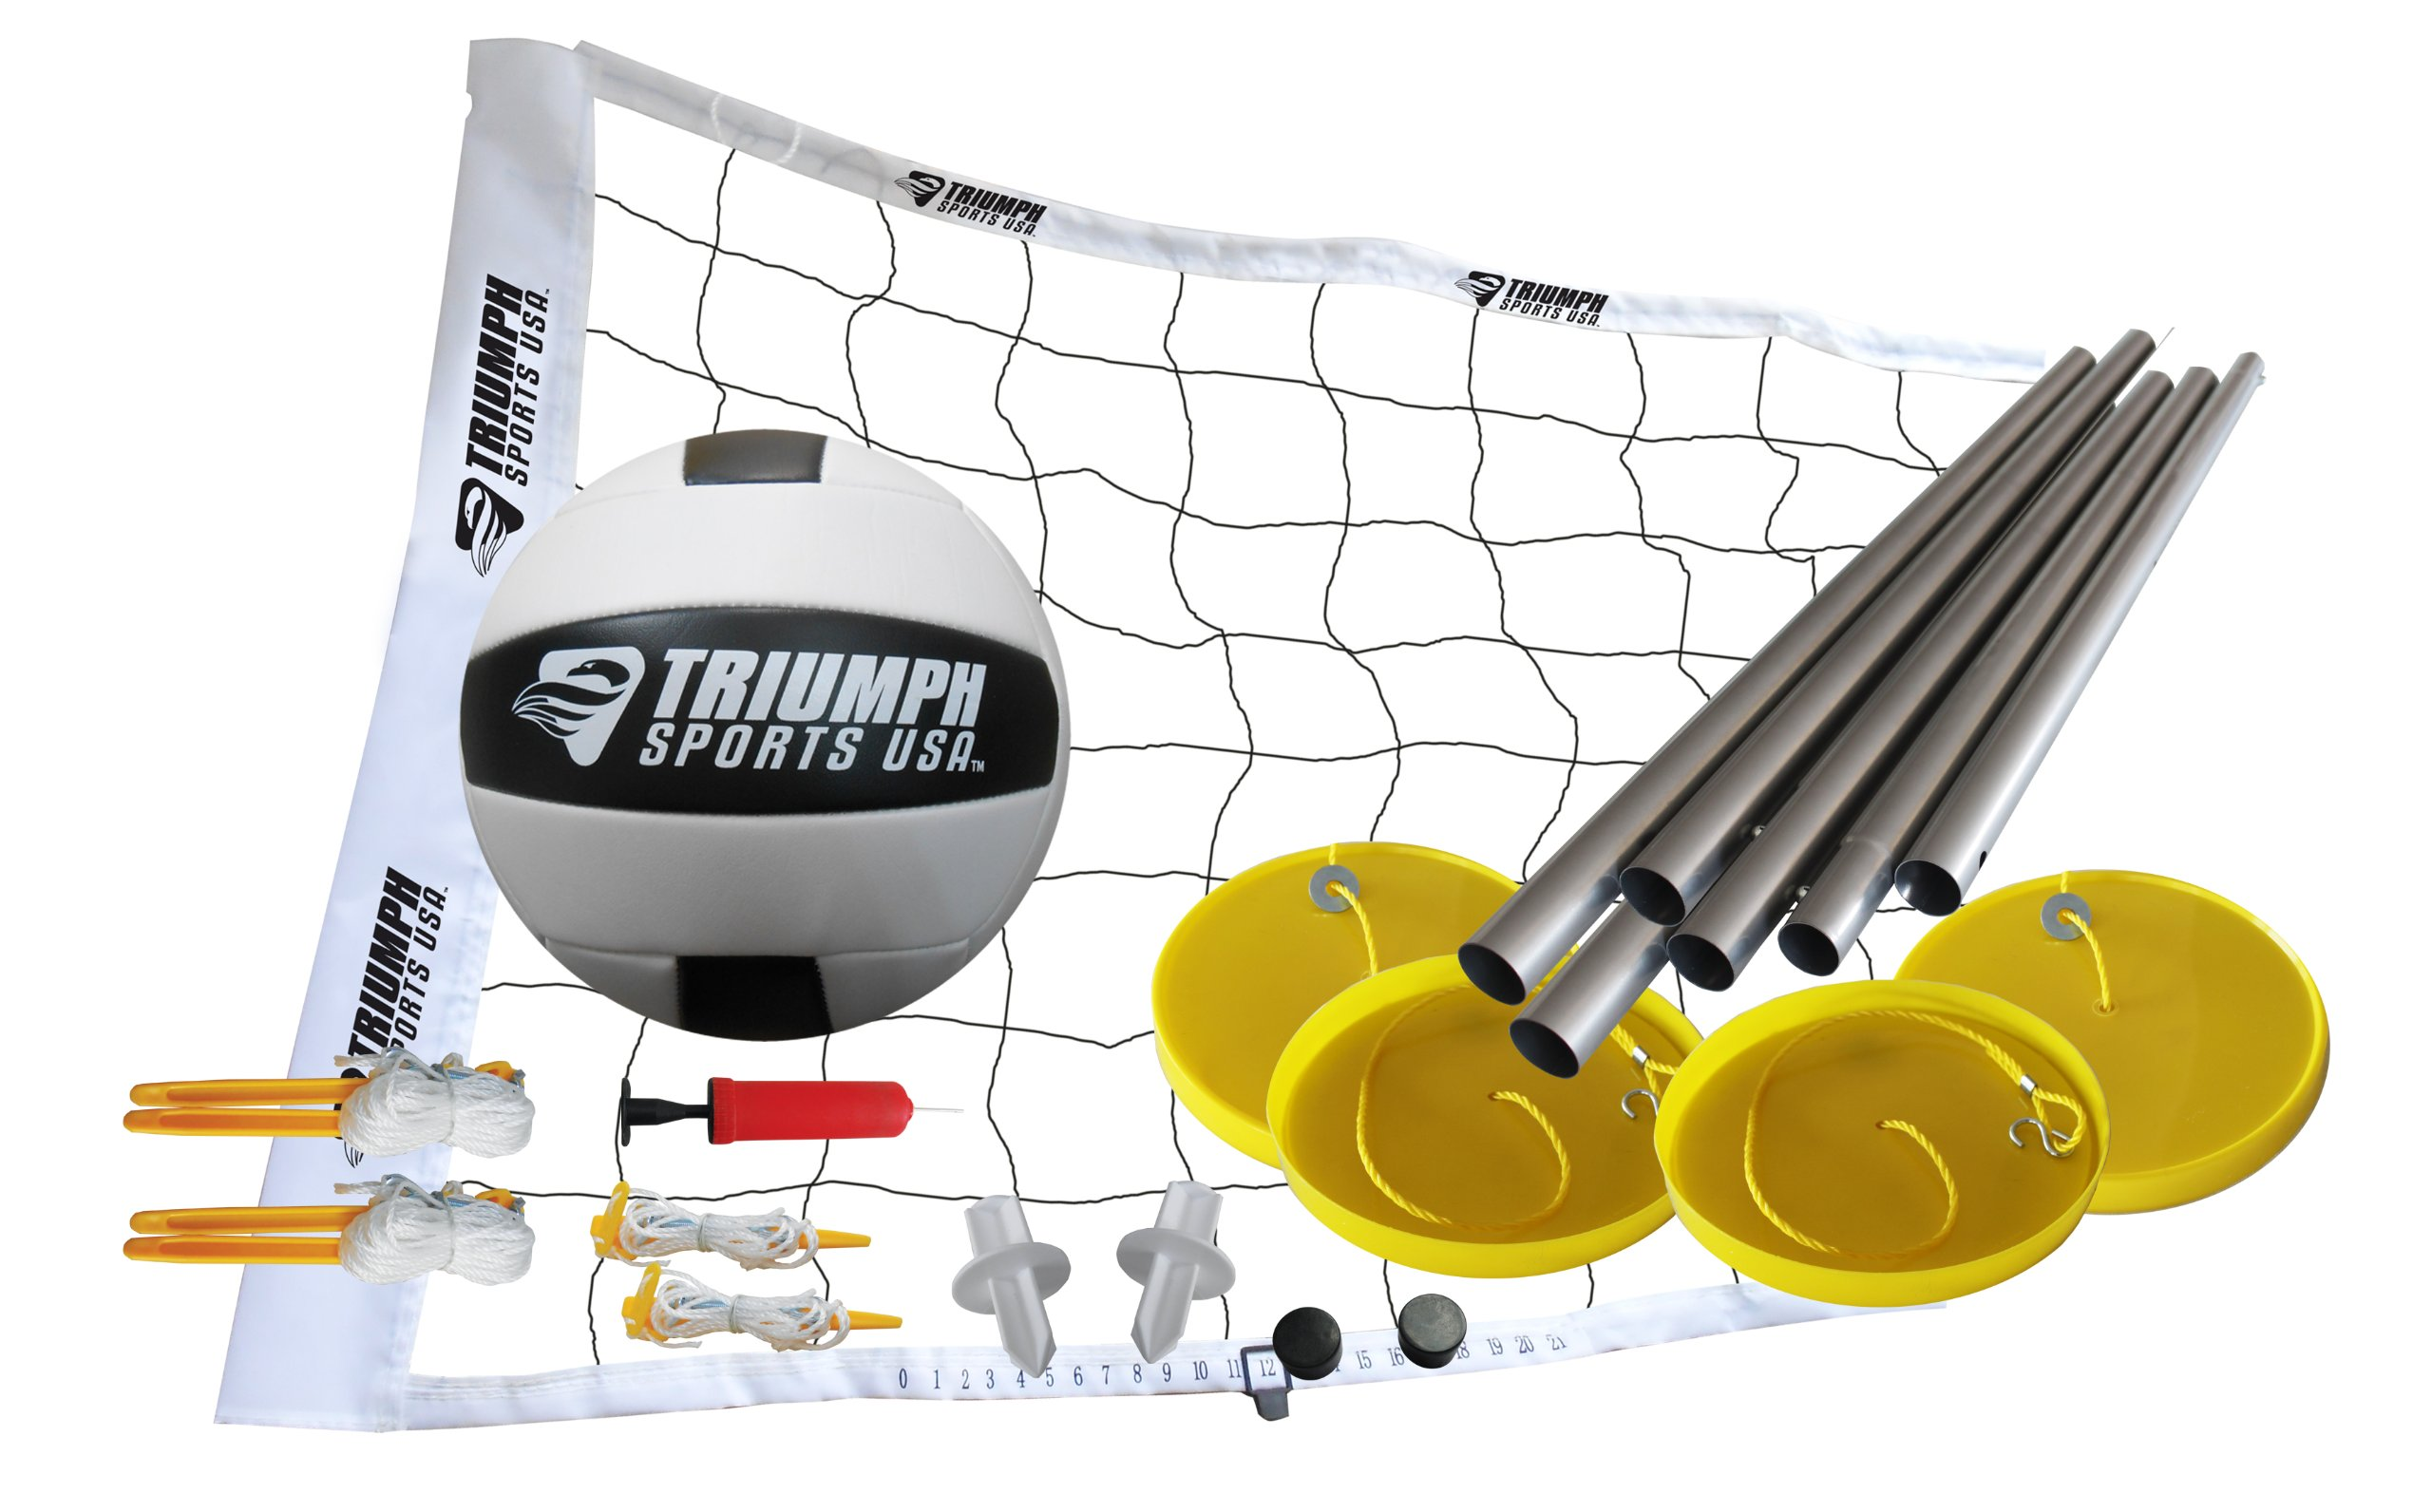 Triumph Beach Volleyball Set Includes Net, Poles, Official Size Volleyball, Inflating Pump with Needle, and More